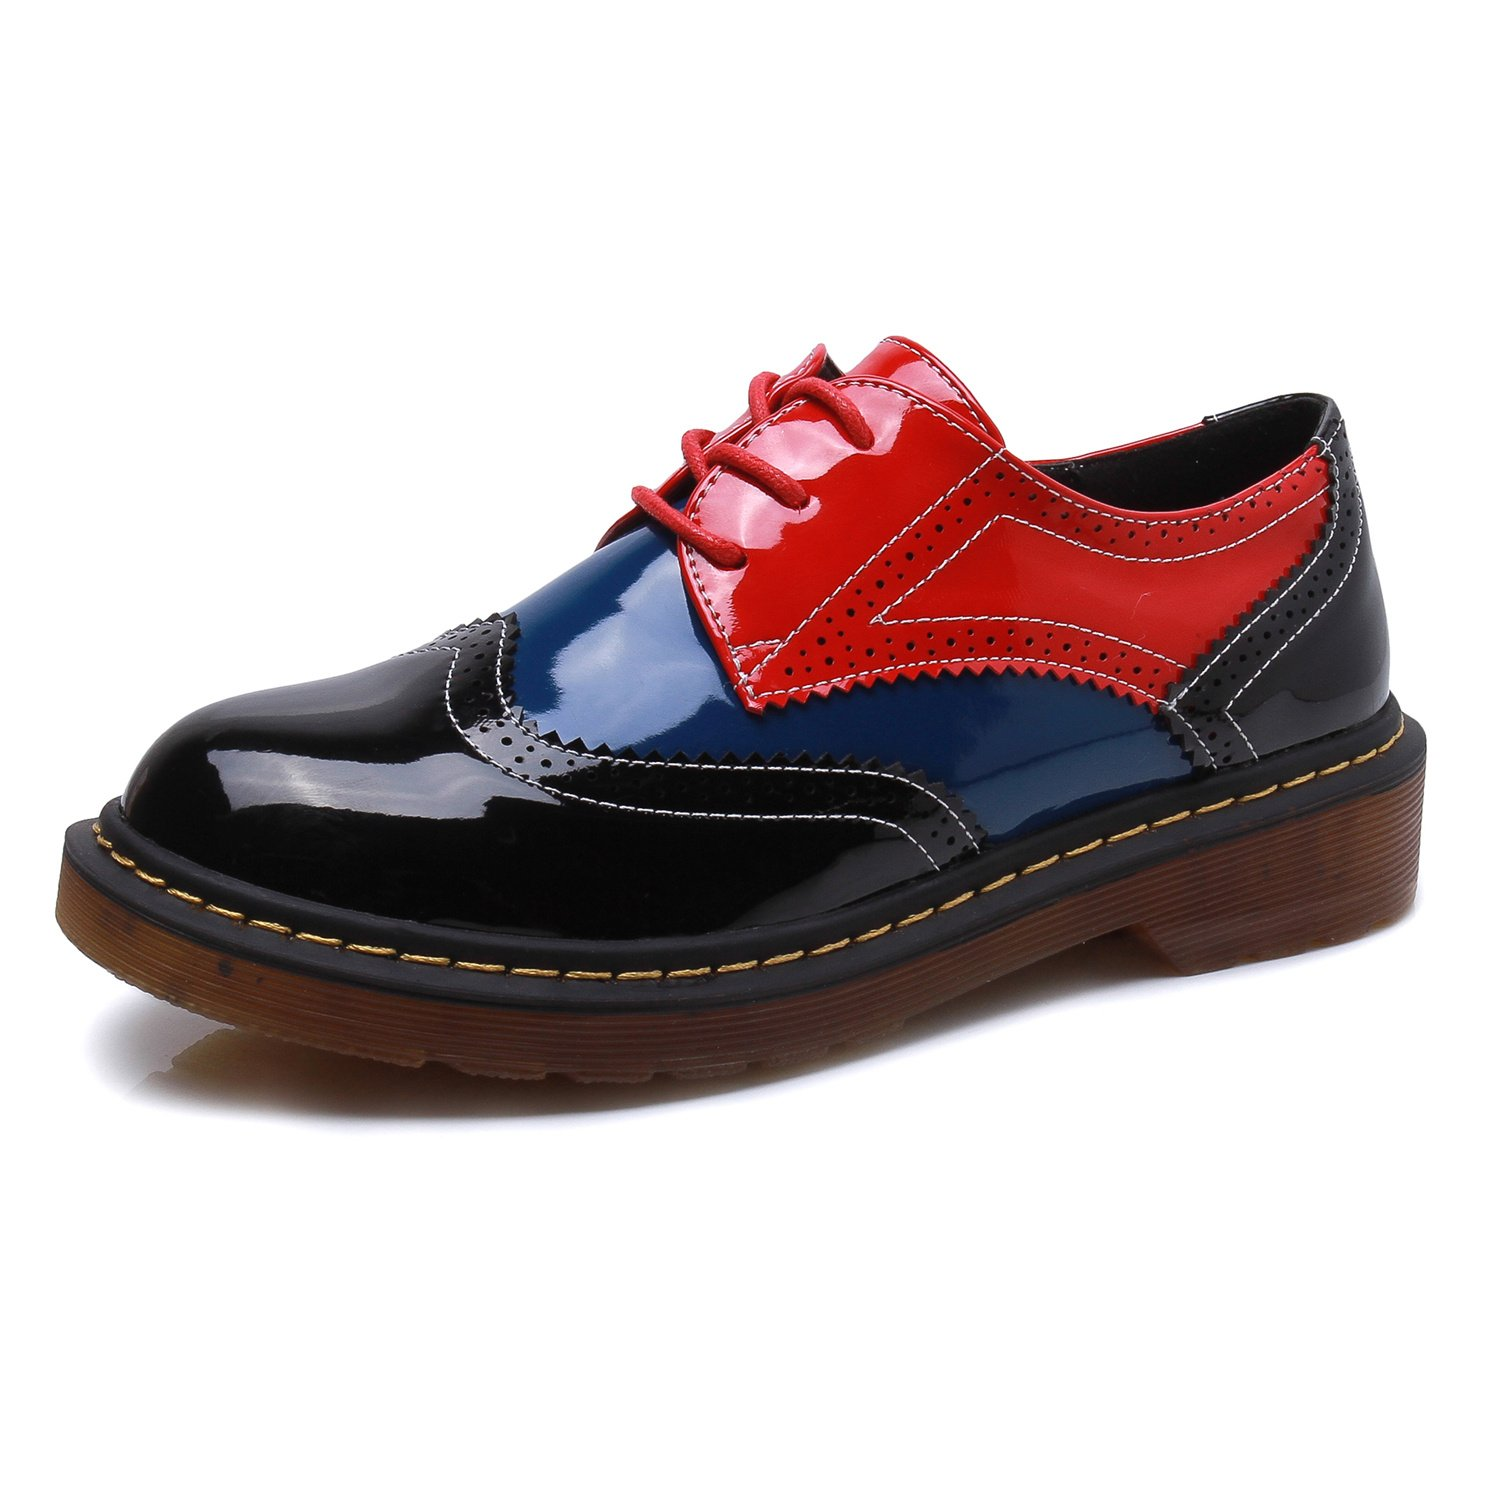 Smilun Women¡¯s Derby Lace-up Flats Shoes Driving University Collection Tassel Fringe Round Toe Blue Red Black Size 9.5 B(M) US